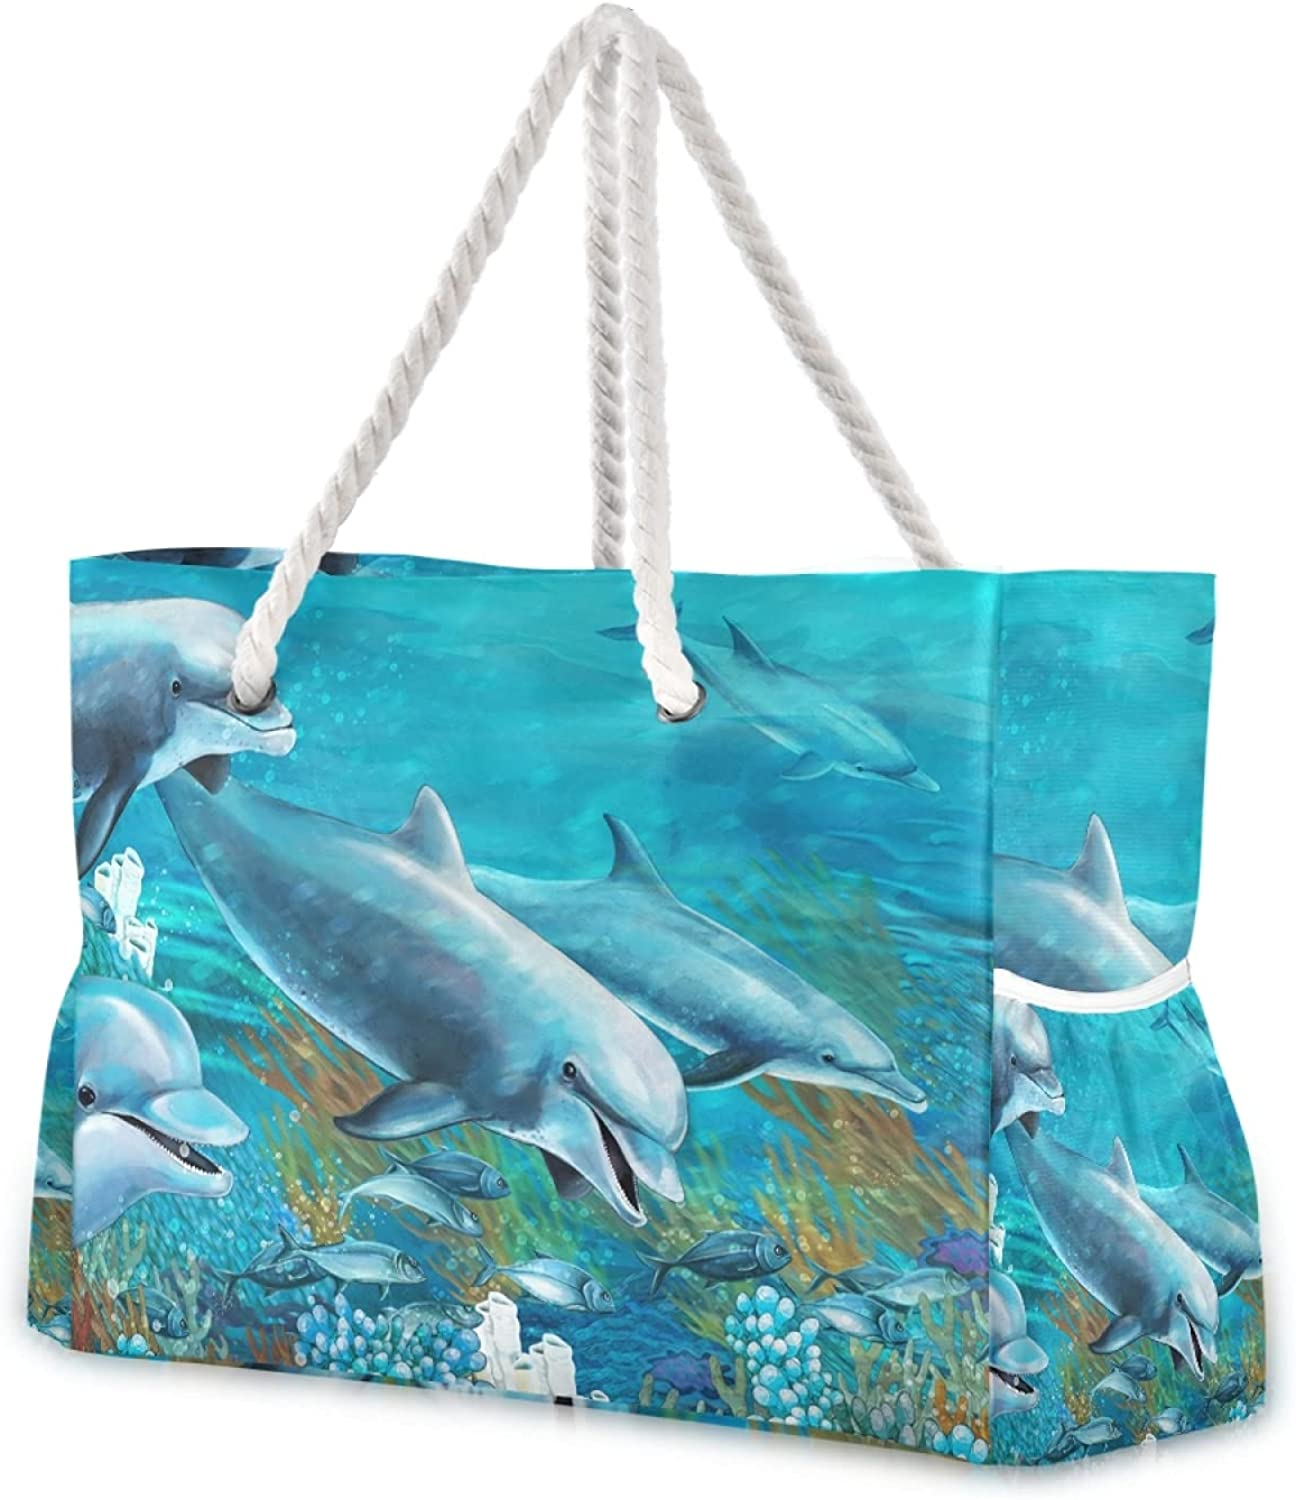 OTVEE Dolphins shop 2021 And Coral Reef Beach Large Tote Zi Bag Travel